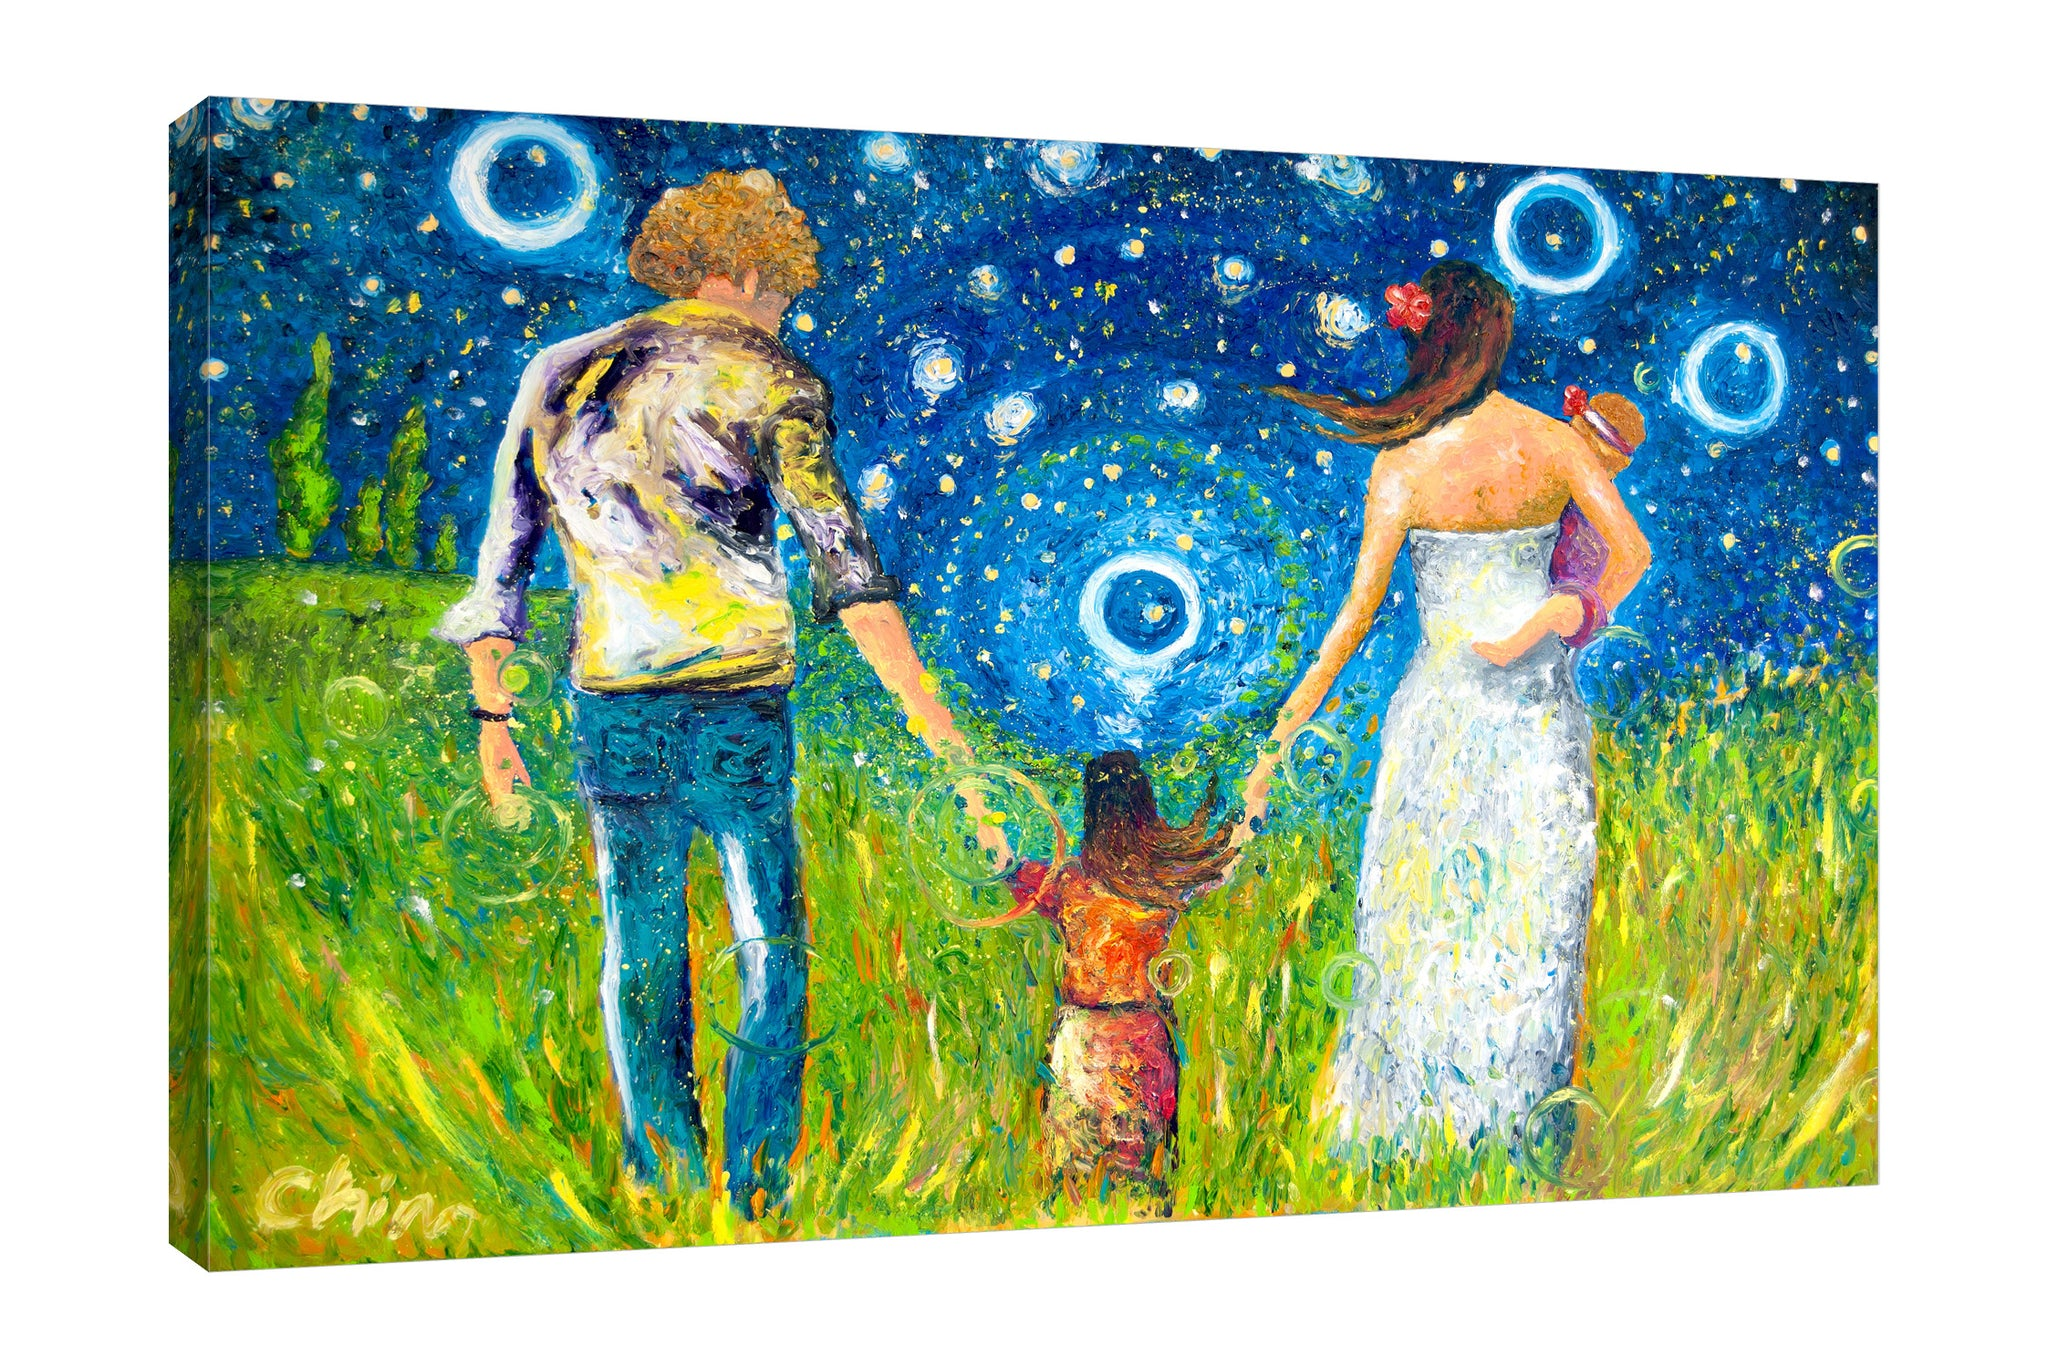 Chiara-Magni,Modern & Contemporary,People,Landscape & Nature,Finger-paint,family,mother,father,daughter,people,night,stars,circles,grass,trees,scenery,landscape,